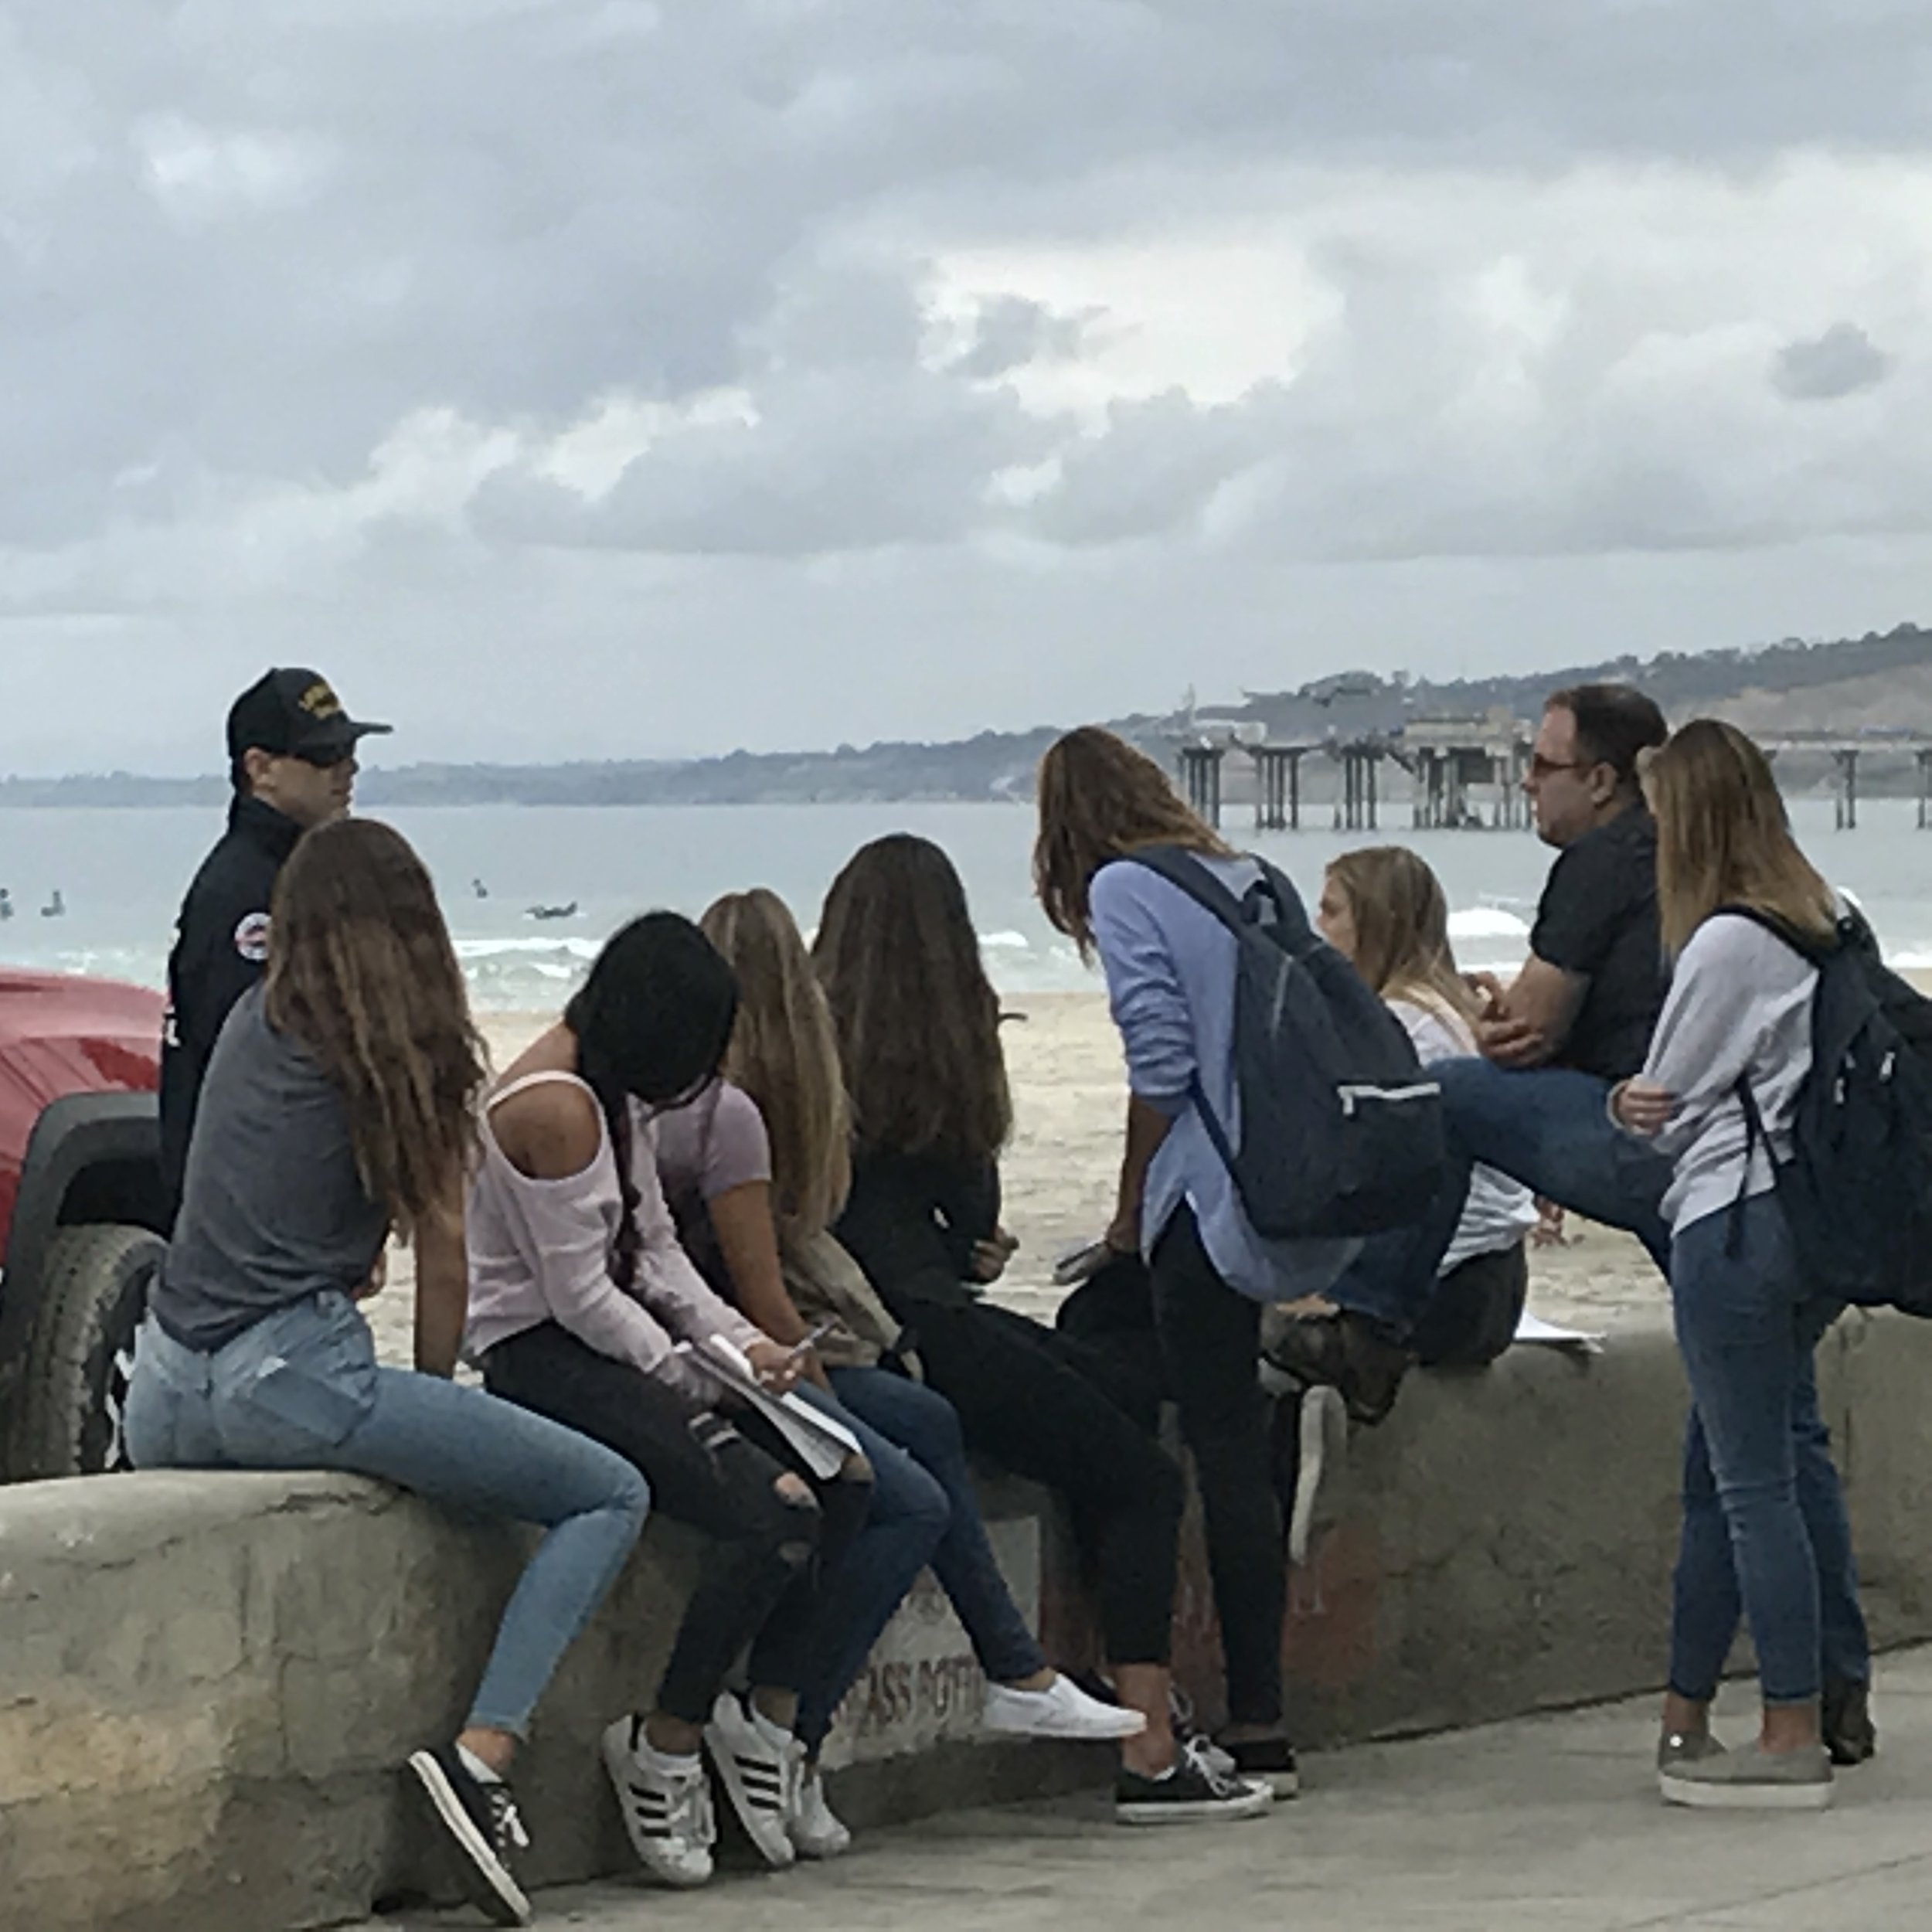 Students conducting ethnographic (in-context) research. Here they are observing and interviewing a lifeguard about some of the challenges existing at the beach.